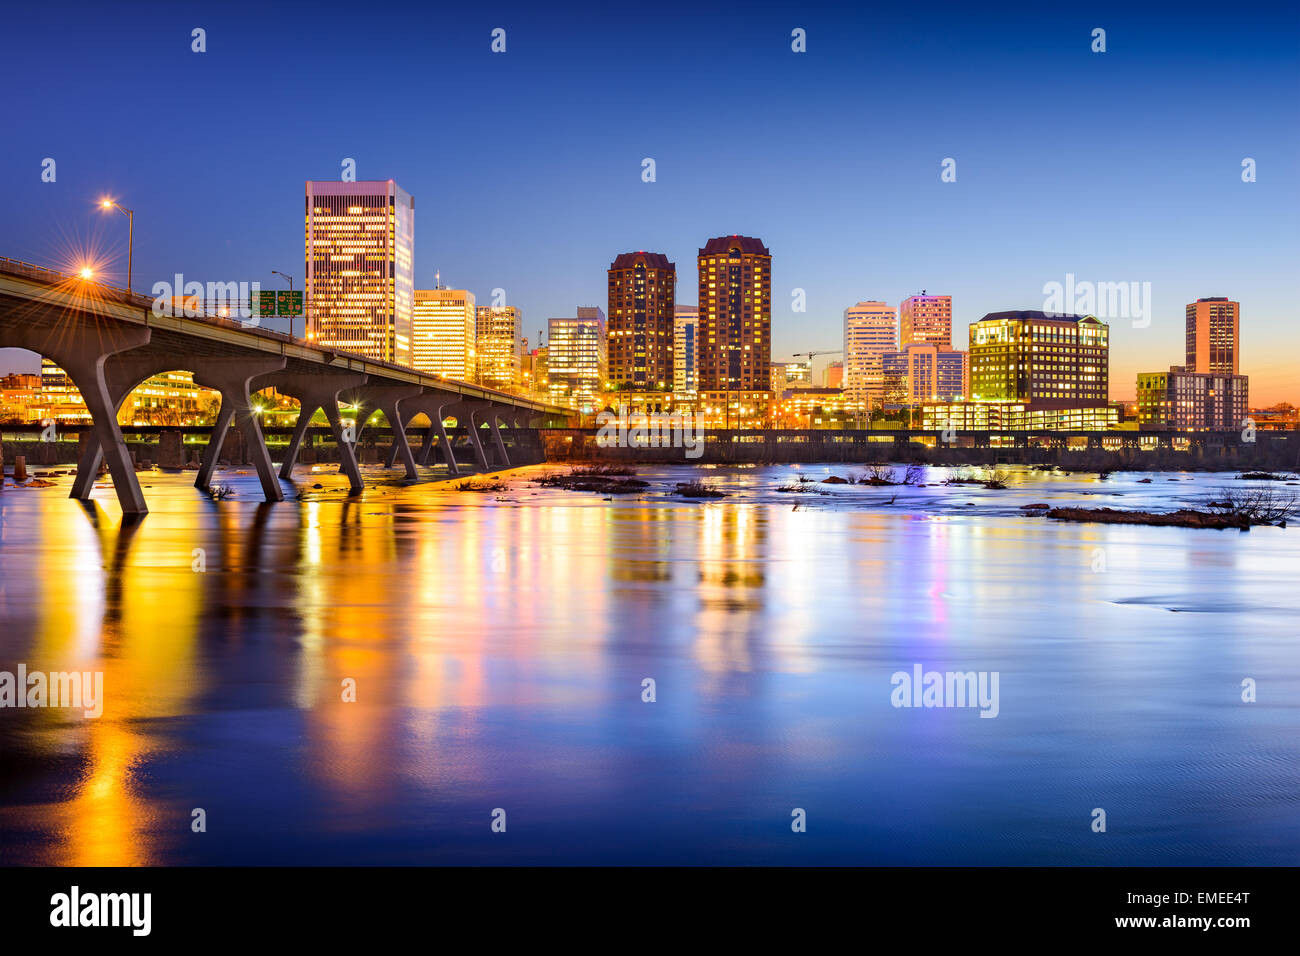 Richmond, Virginia, USA downtown city skyline. - Stock Image